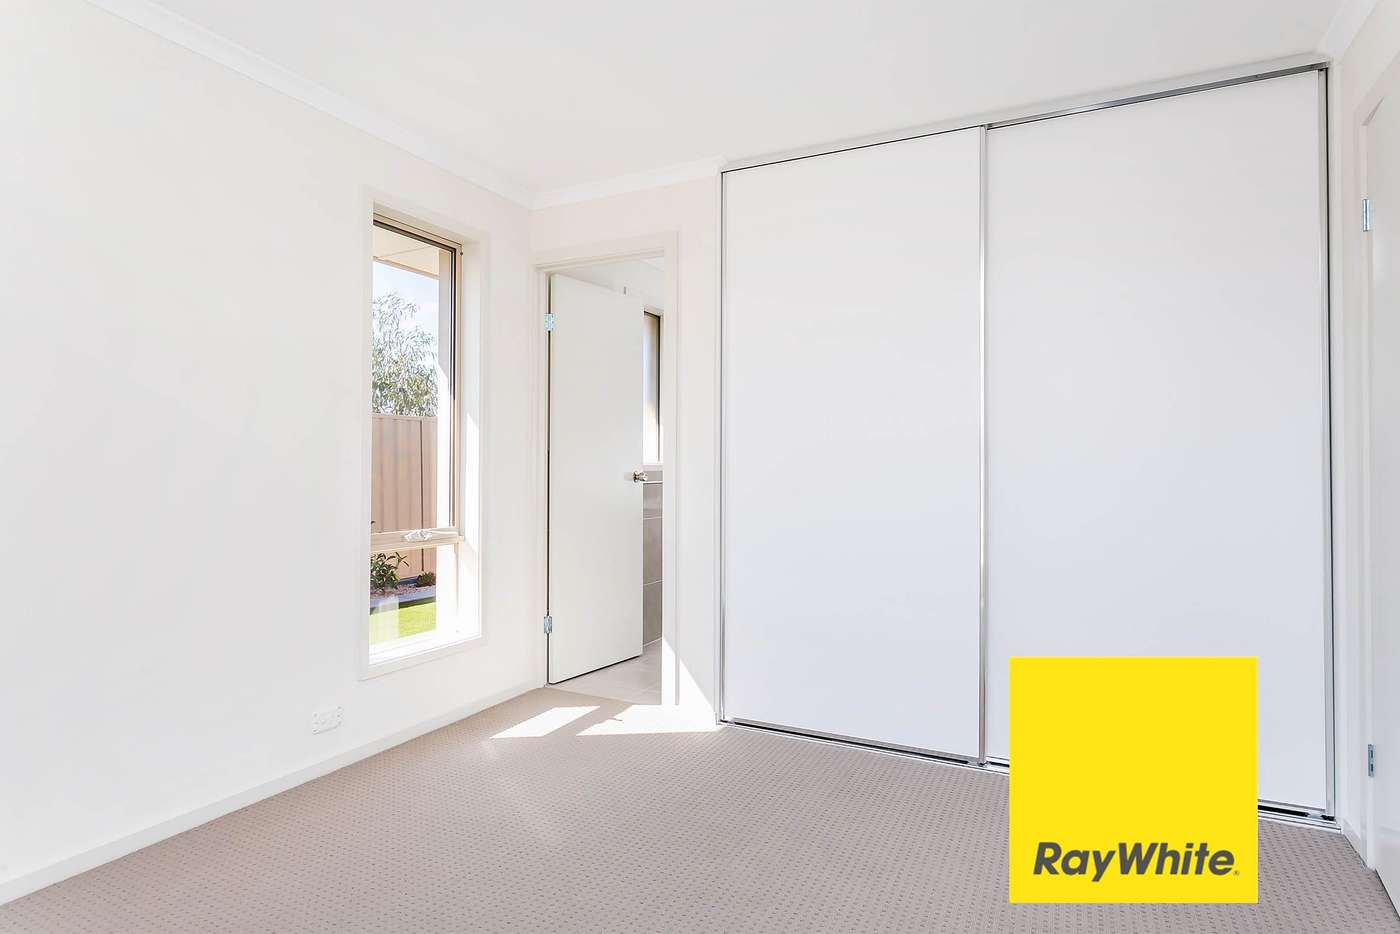 Fifth view of Homely house listing, 26 Matelot Street, Seaford Meadows SA 5169